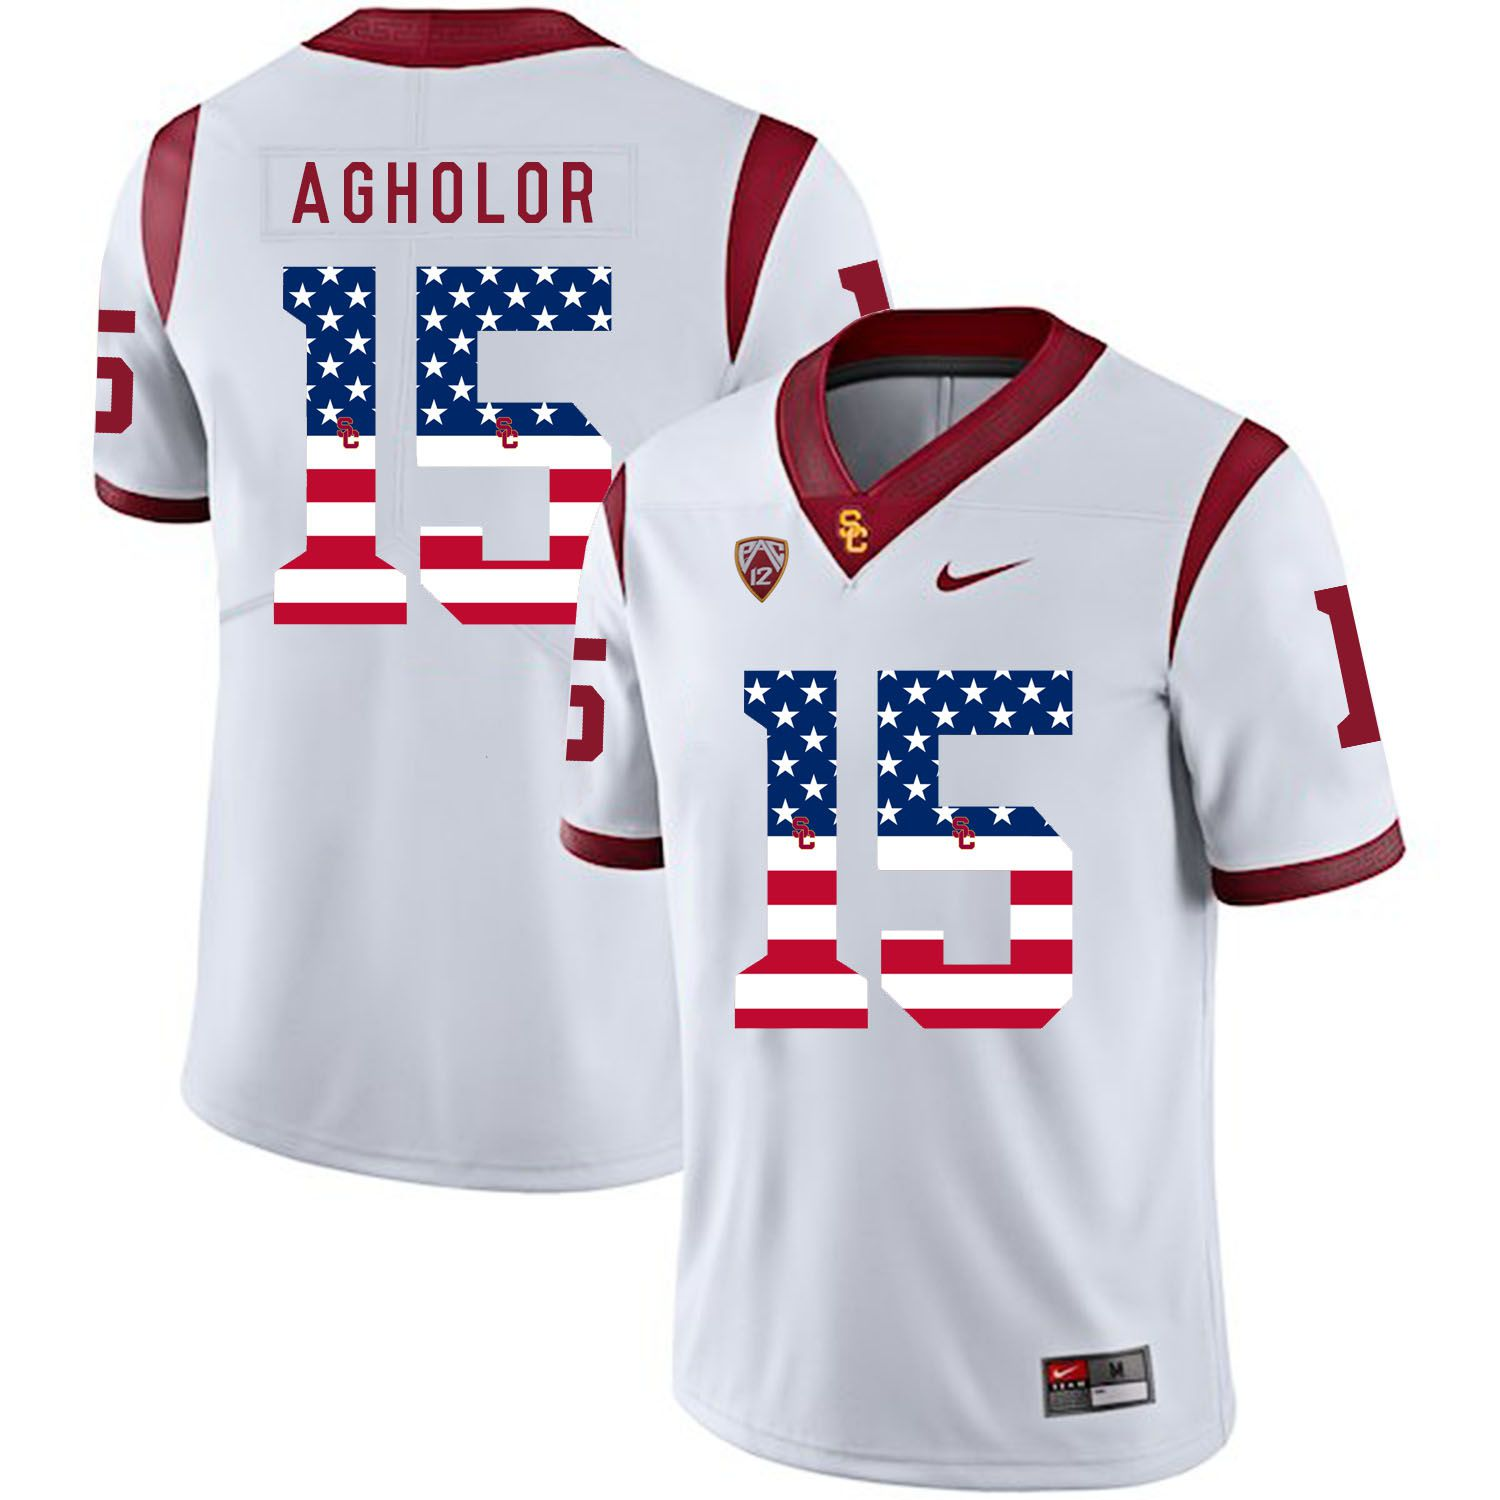 Men USC Trojans 15 Agholor White Flag Customized NCAA Jerseys